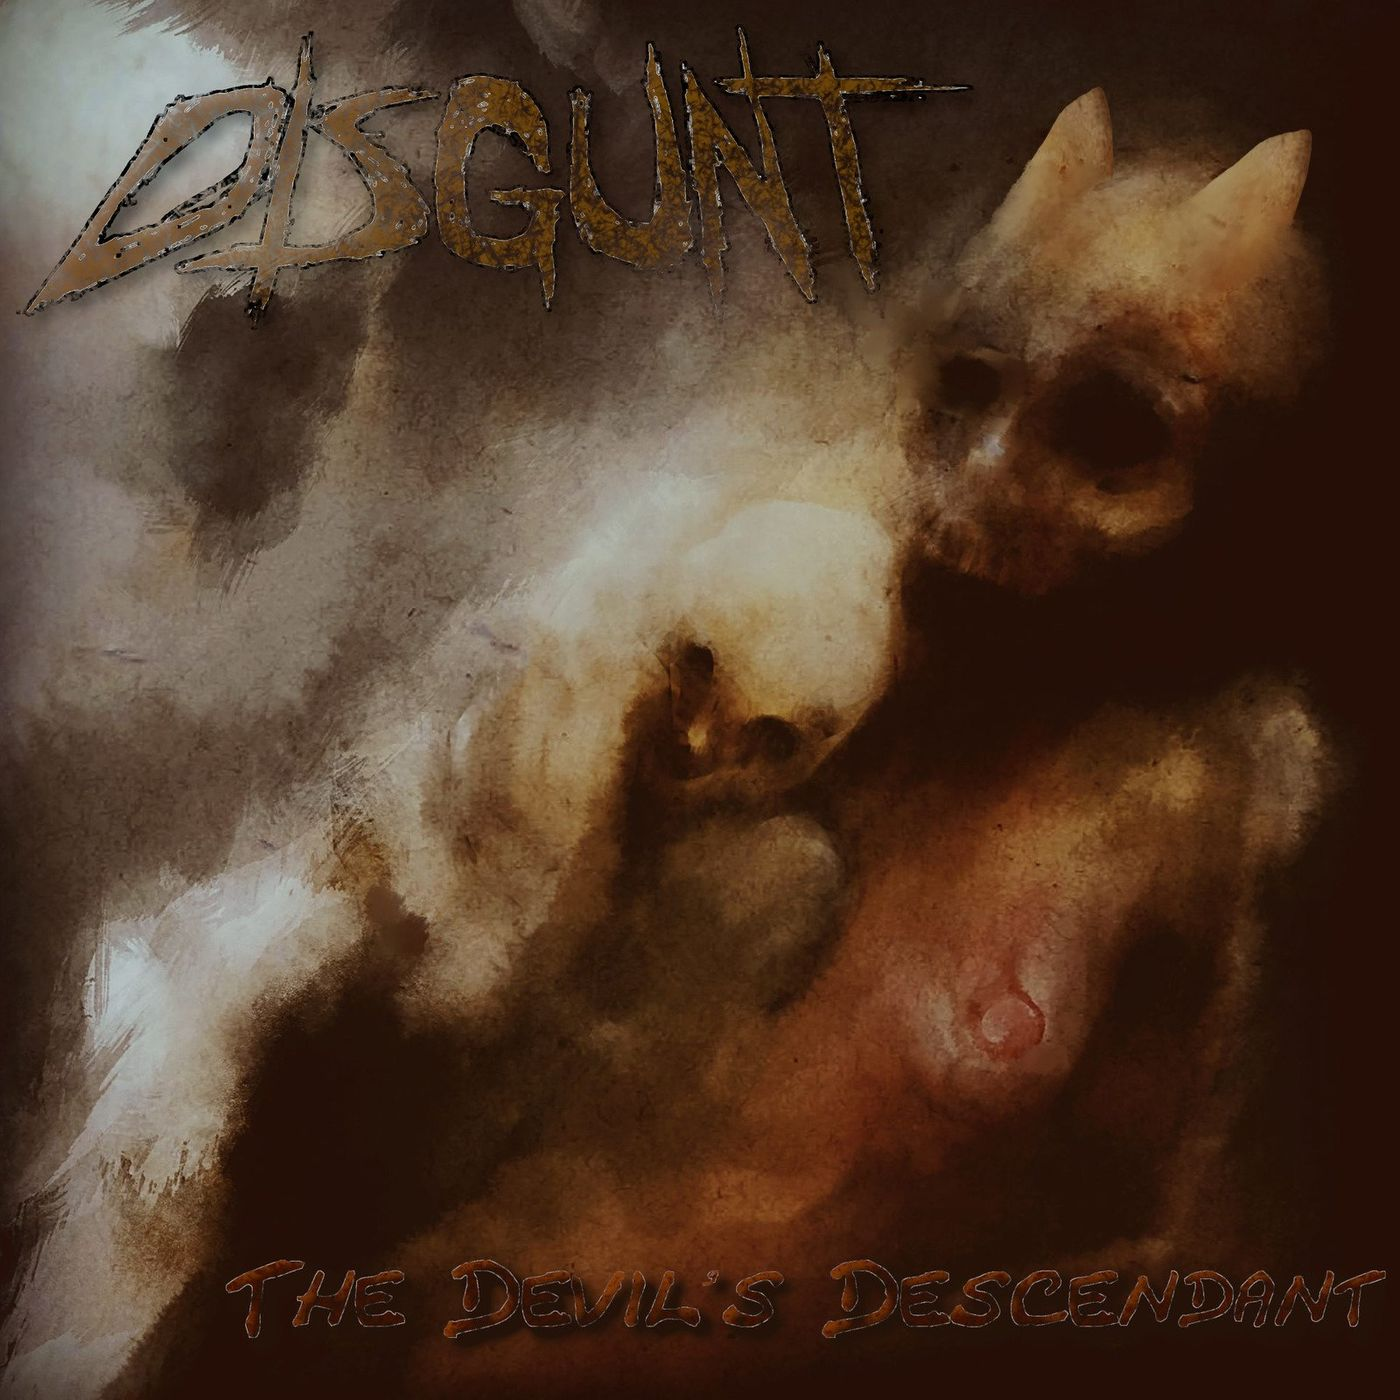 Disgunt - The Devil's Descendant [single] (2021)